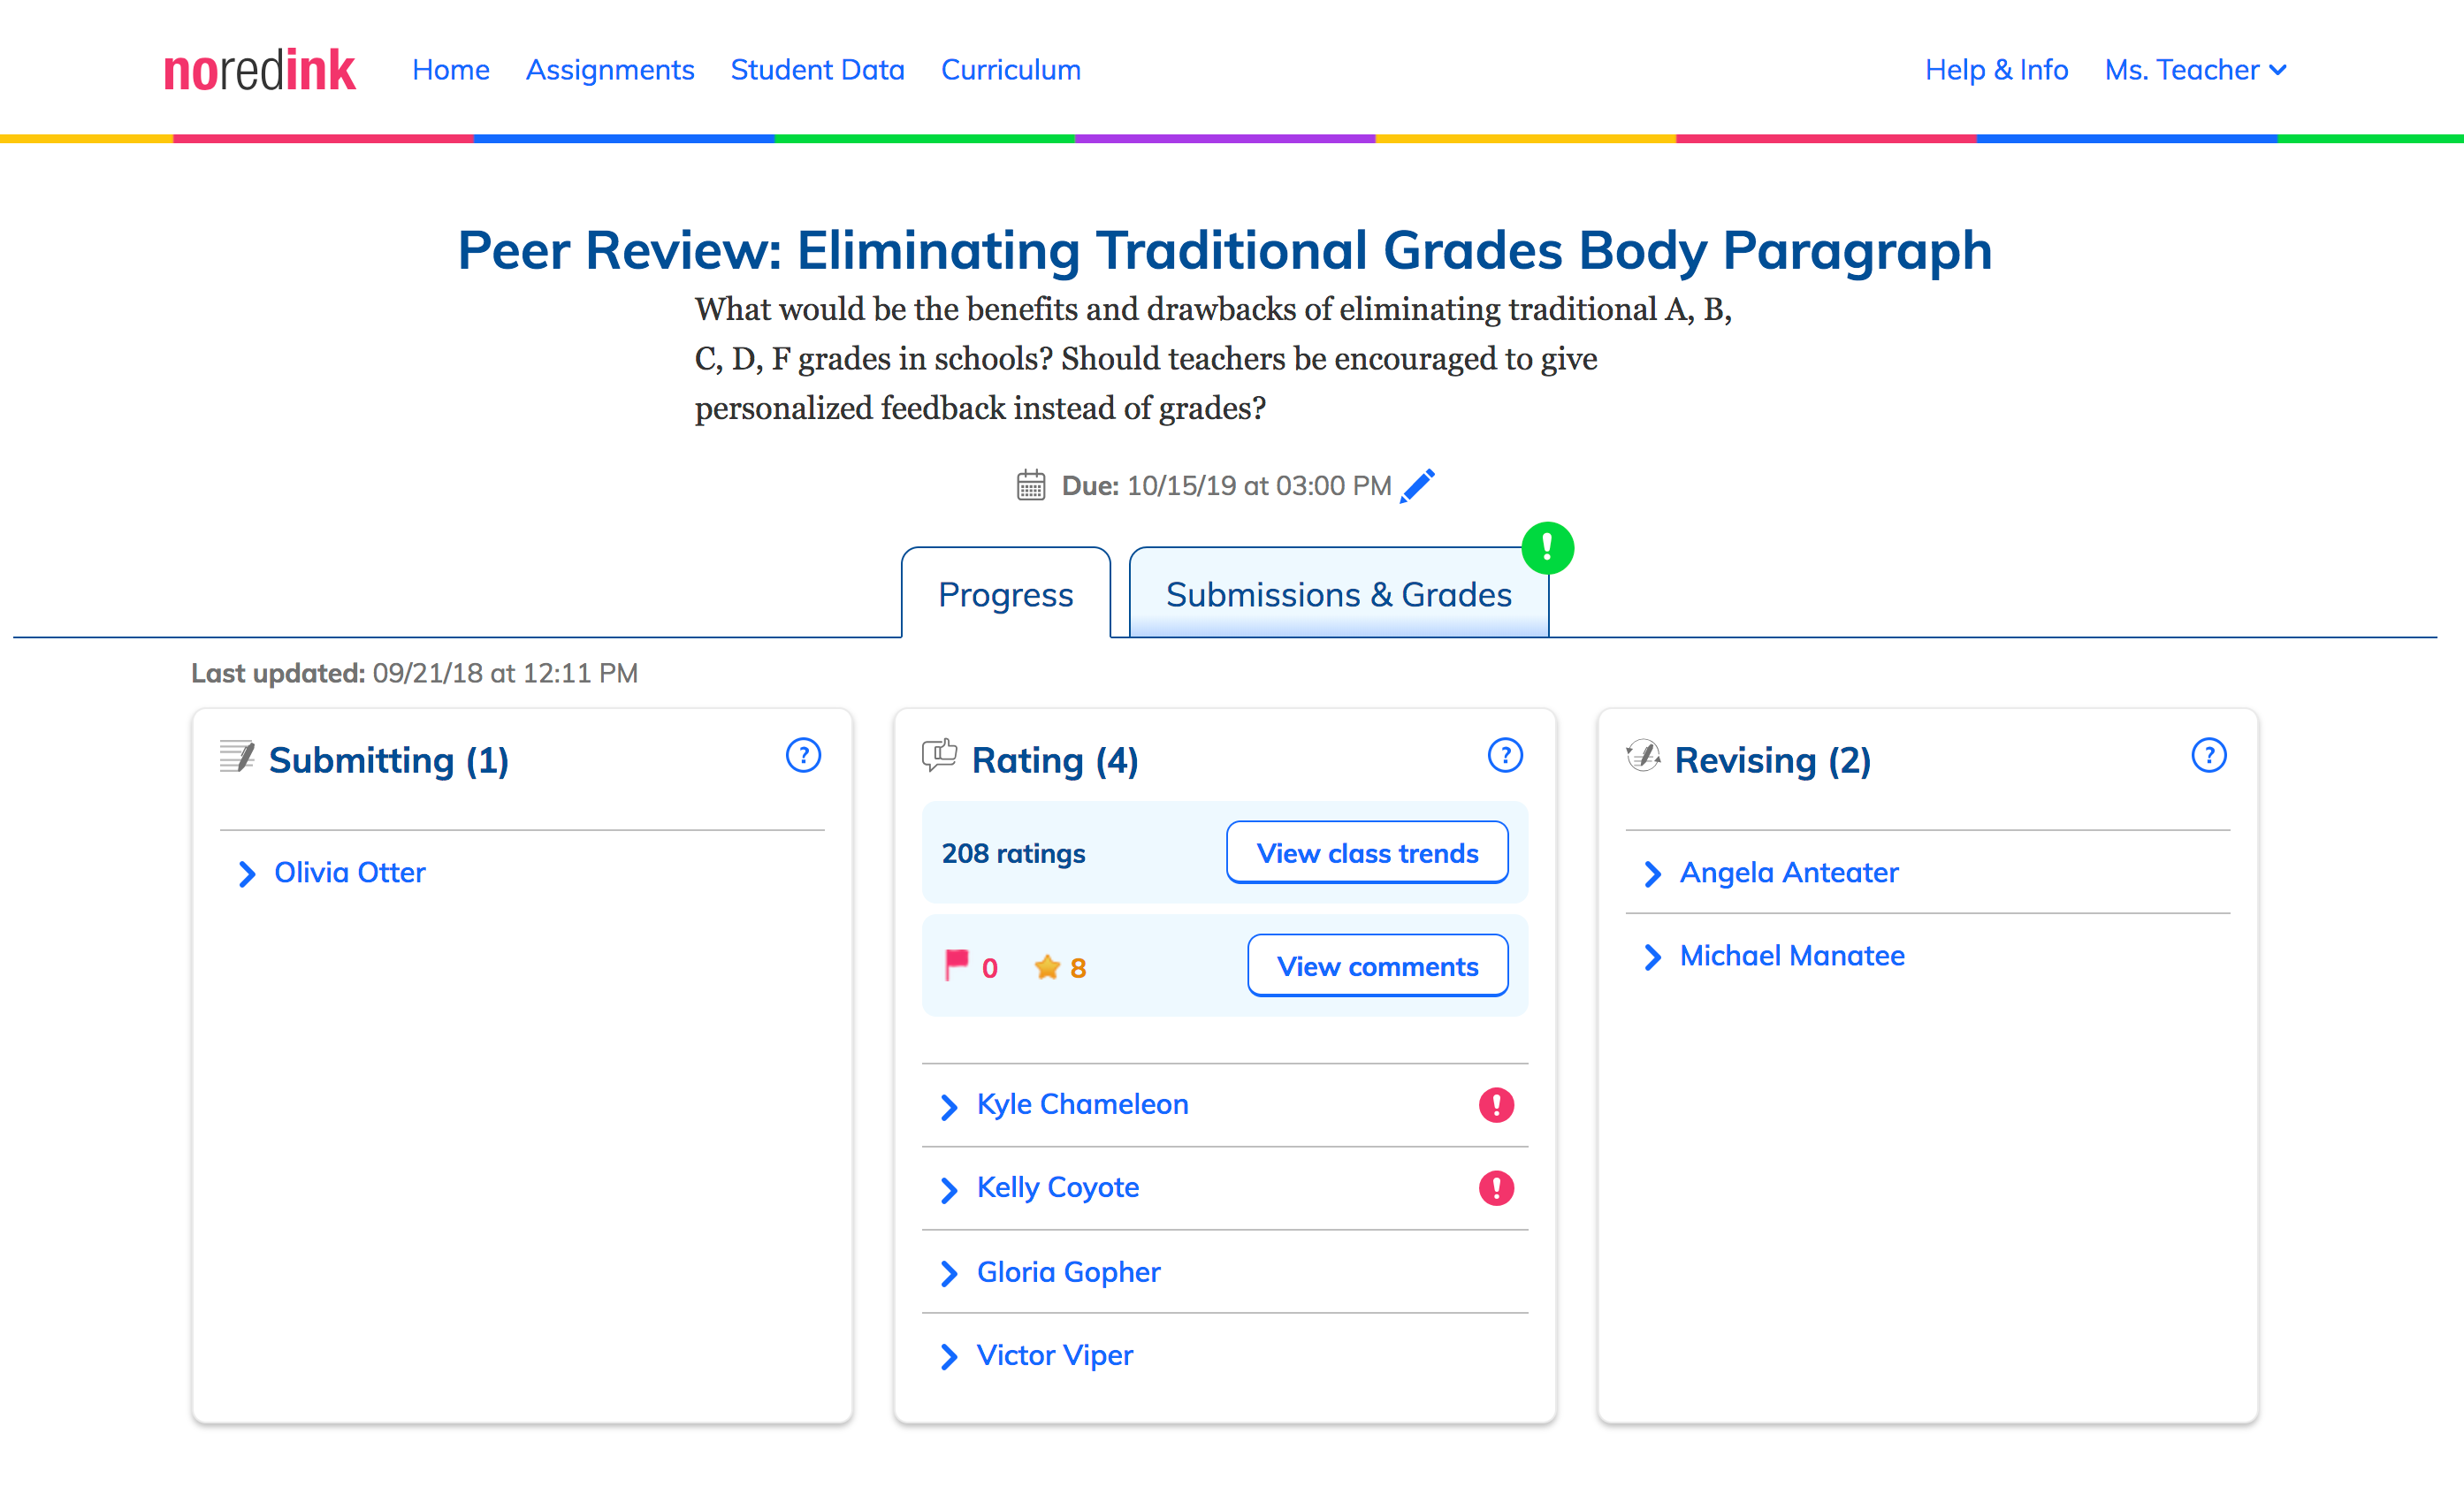 screencapture-demo-noredink-teach-courses-1047500-peer_reviews-444-progress-2018-09-21-12_11_33.png